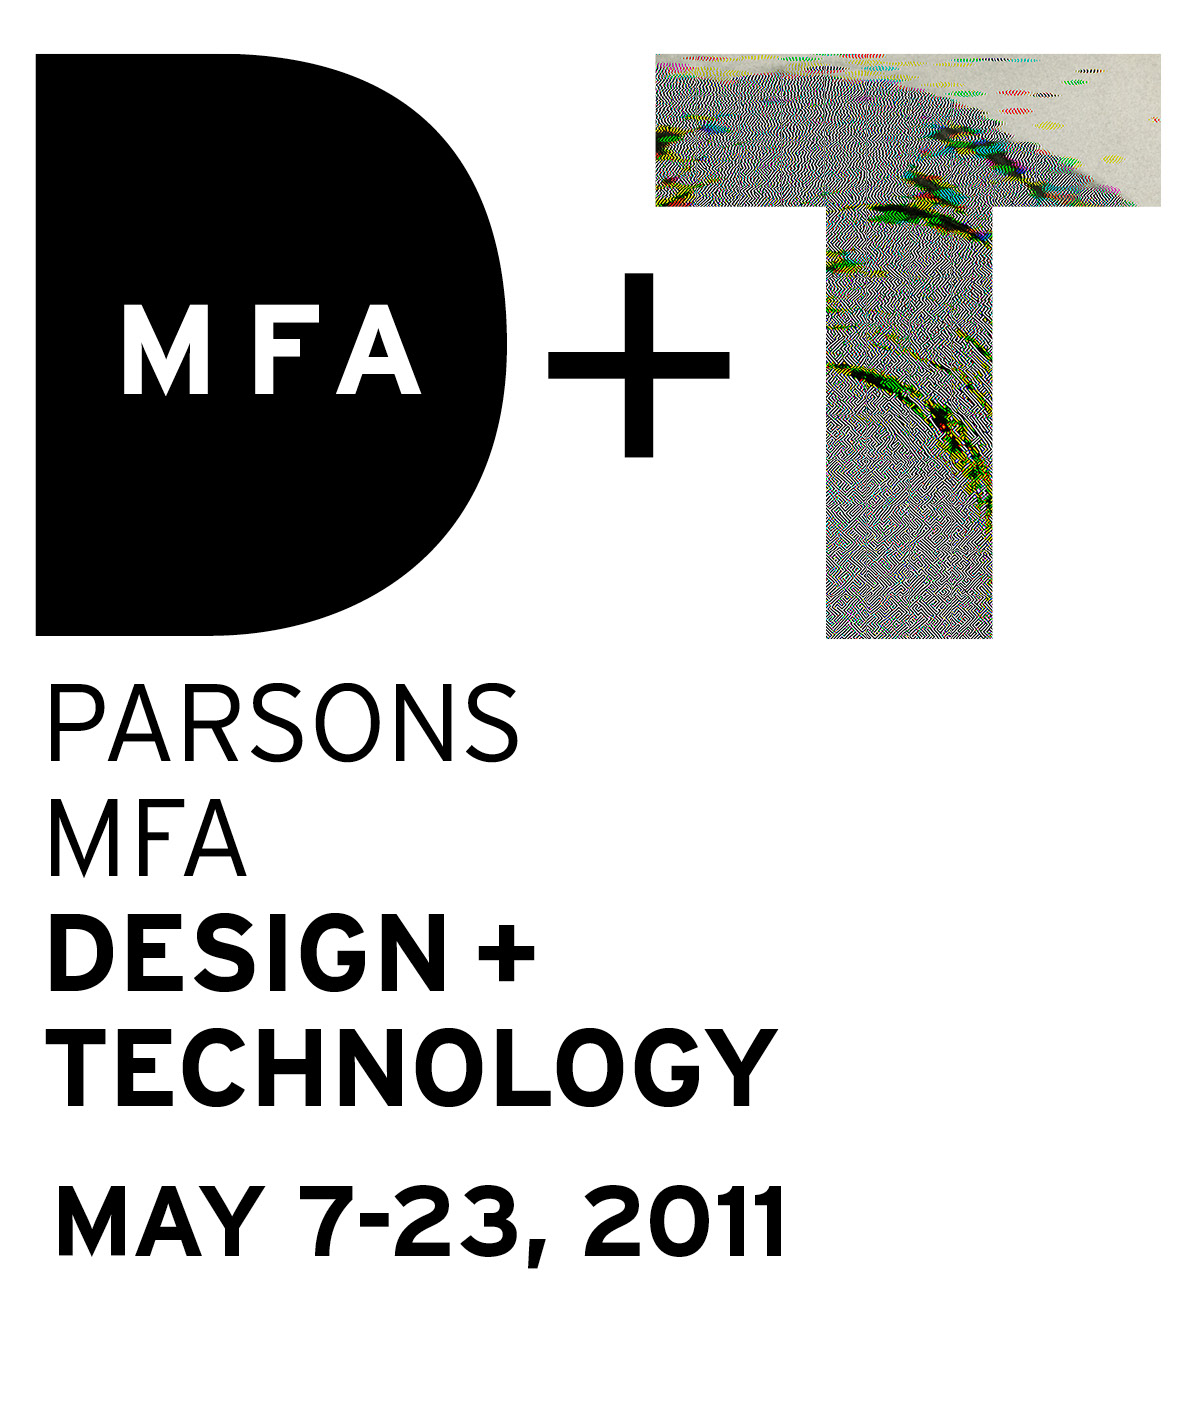 mfa id thesis parsons Cv: david r carroll mfa: postal: 79 mfa design & technology, parsons school of design parsons bfa communication design and technology thesis exhibition.